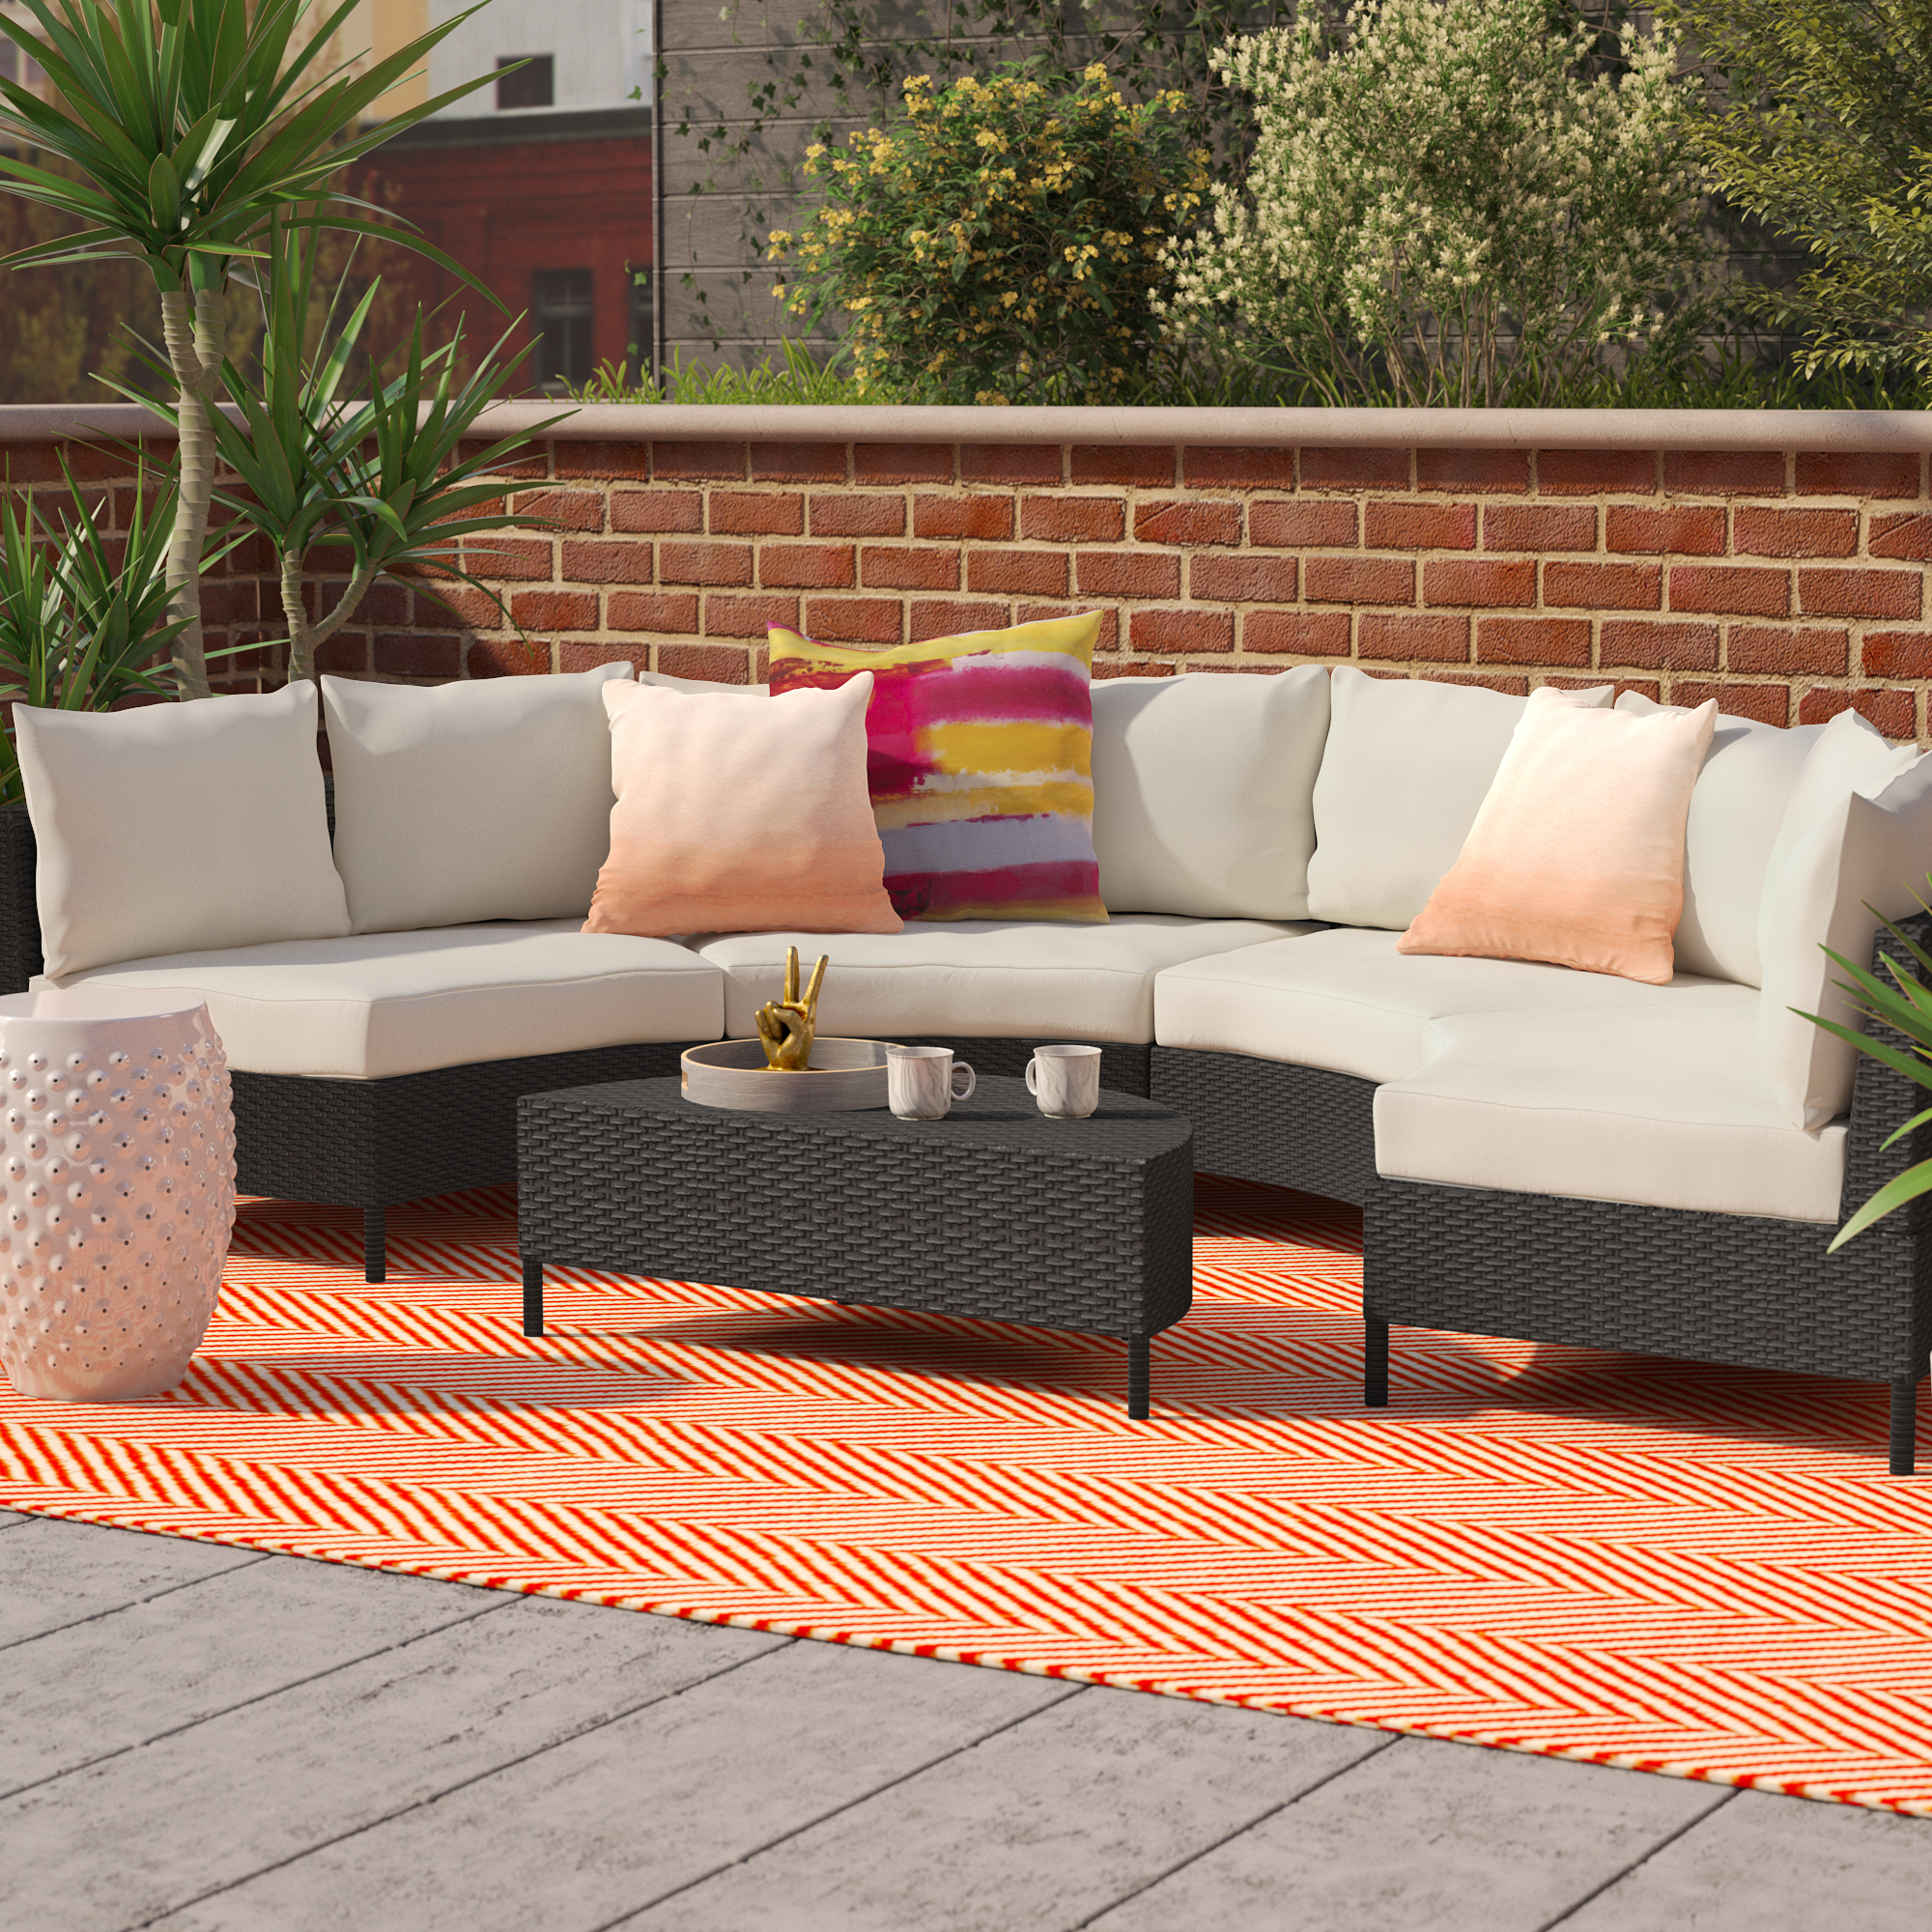 Exceptionnel Patio Furniture Ft. Sunbrella Fabric